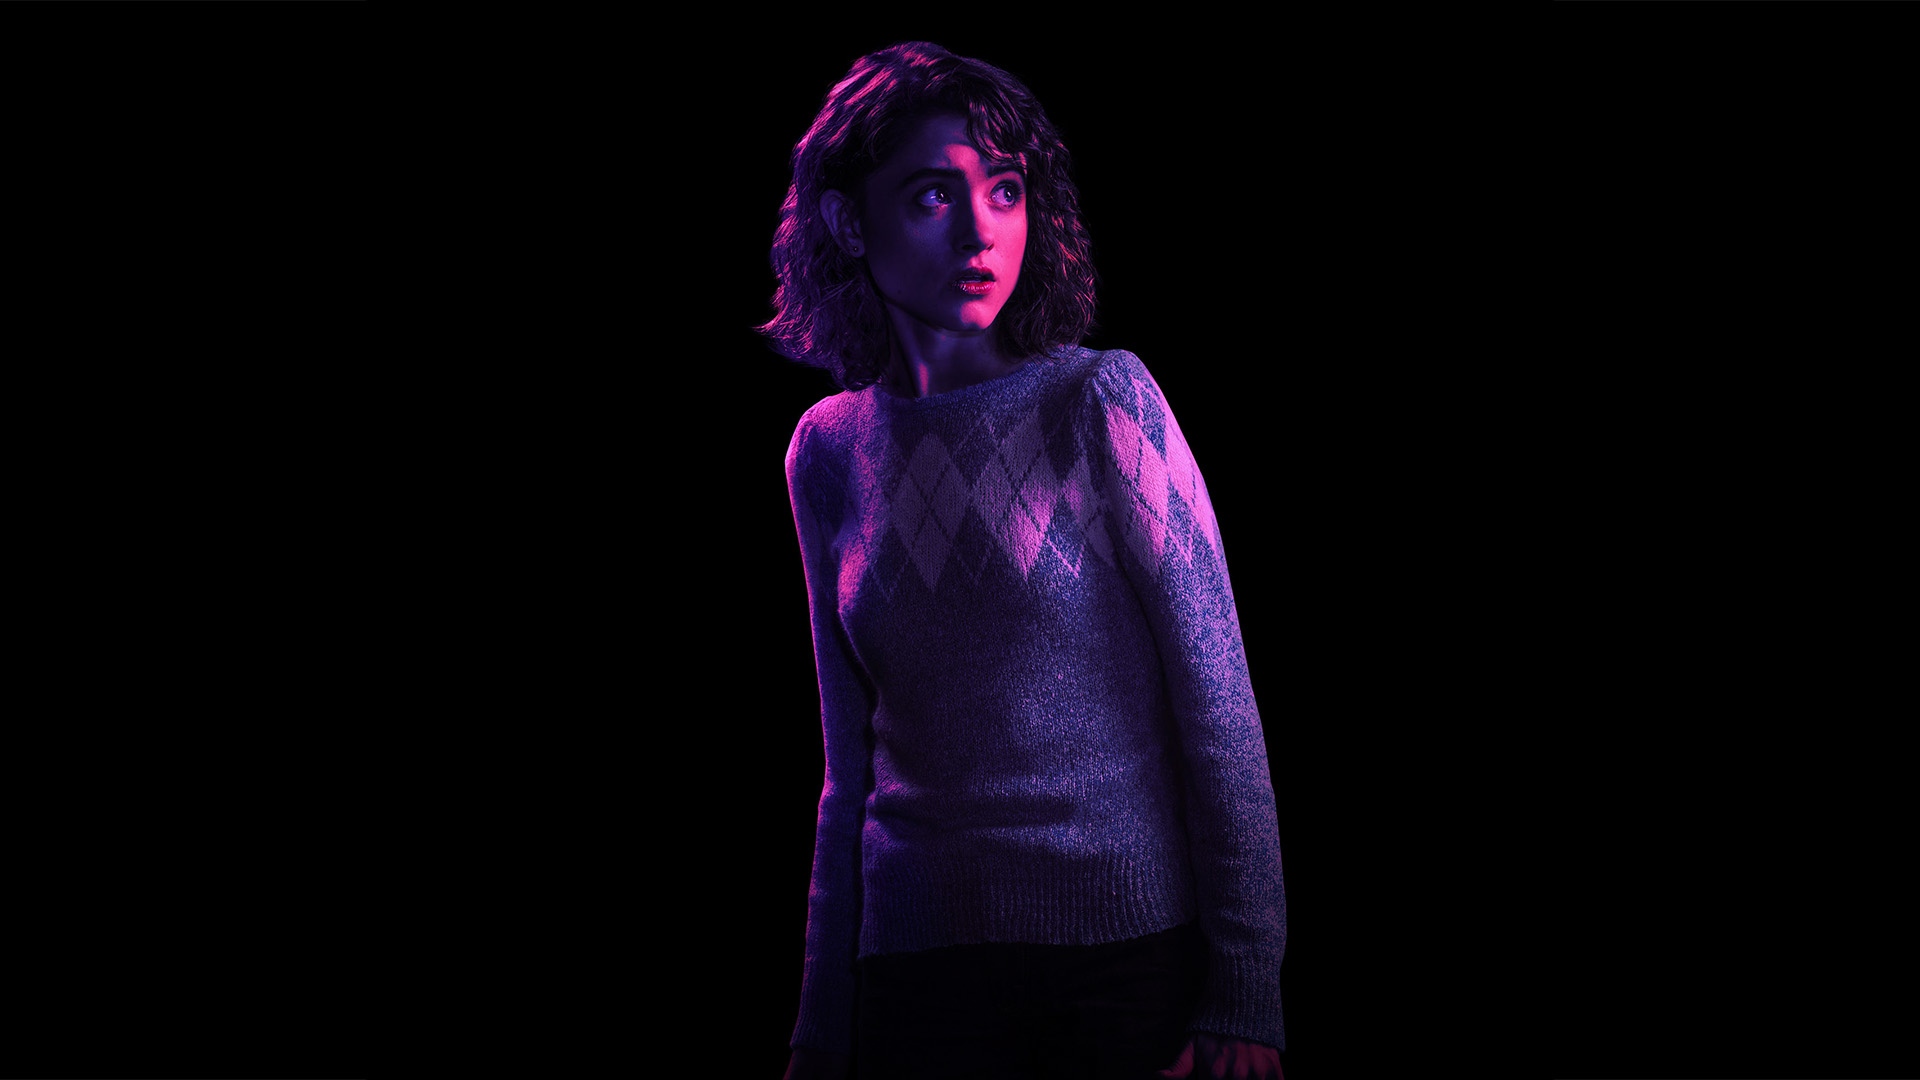 Natalia Dyer As Nancy Stranger Things Season 2 Wallpaper Hd Tv